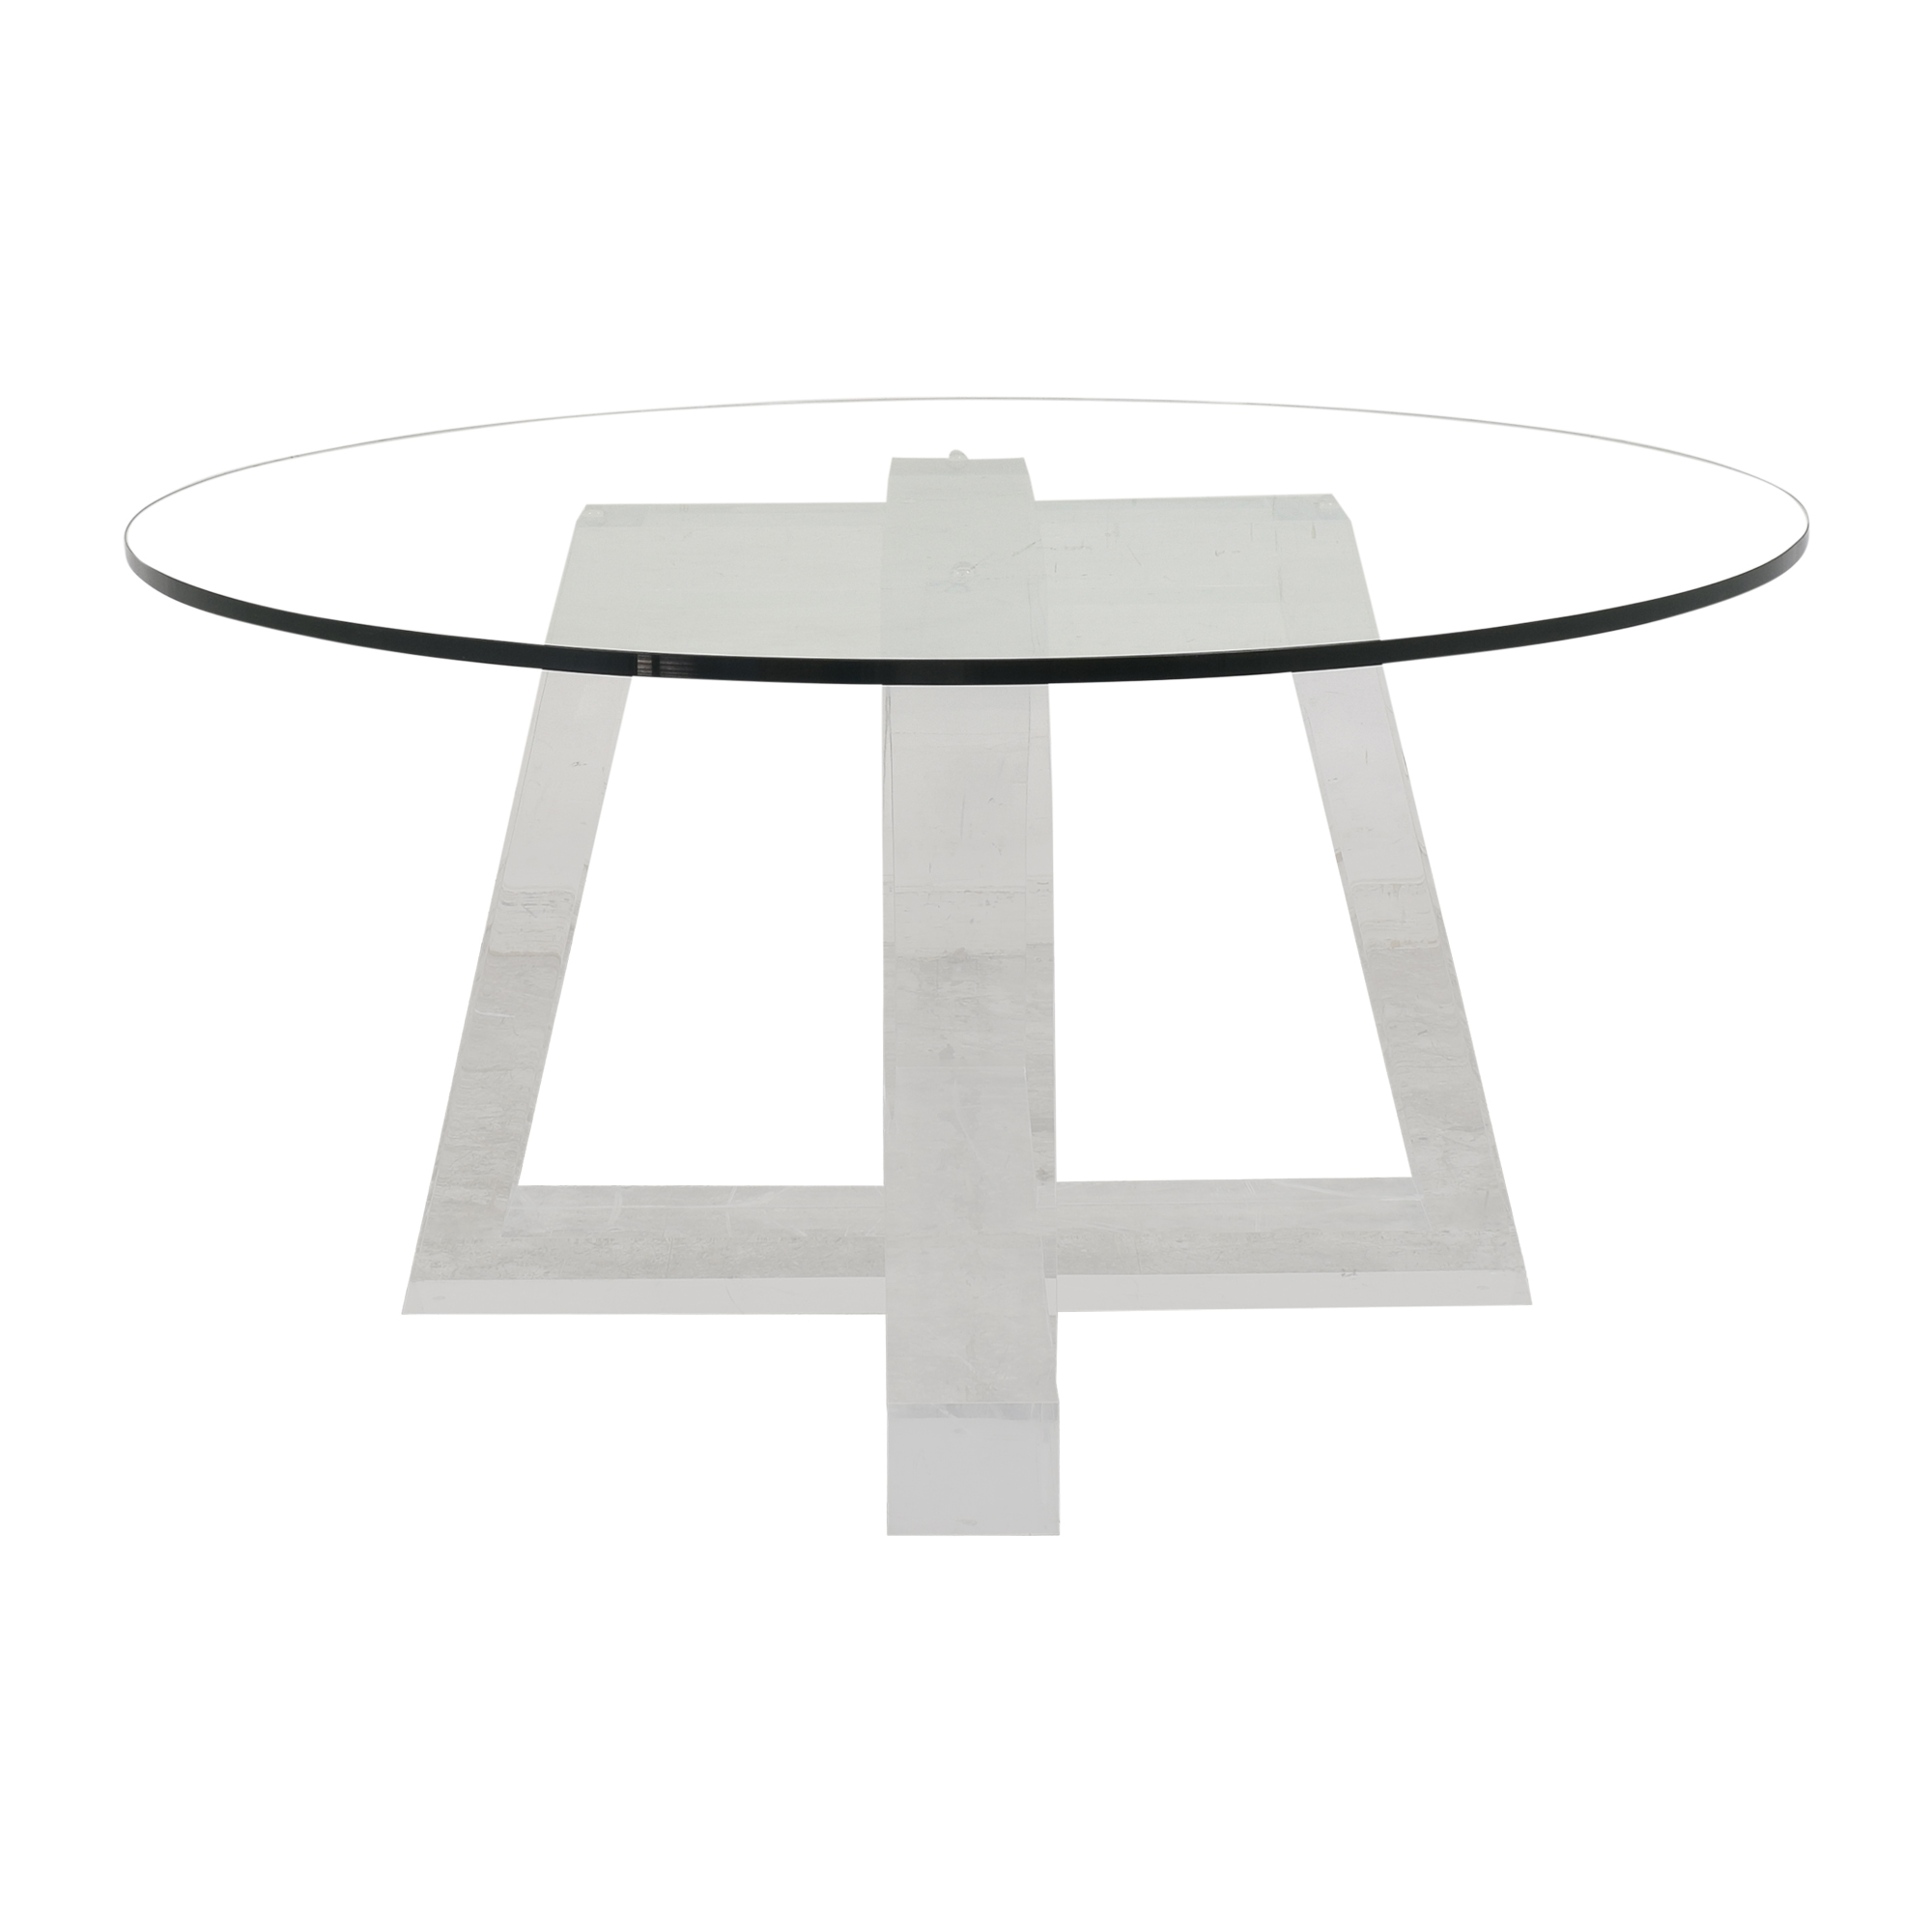 Custom Round Dining Table for sale